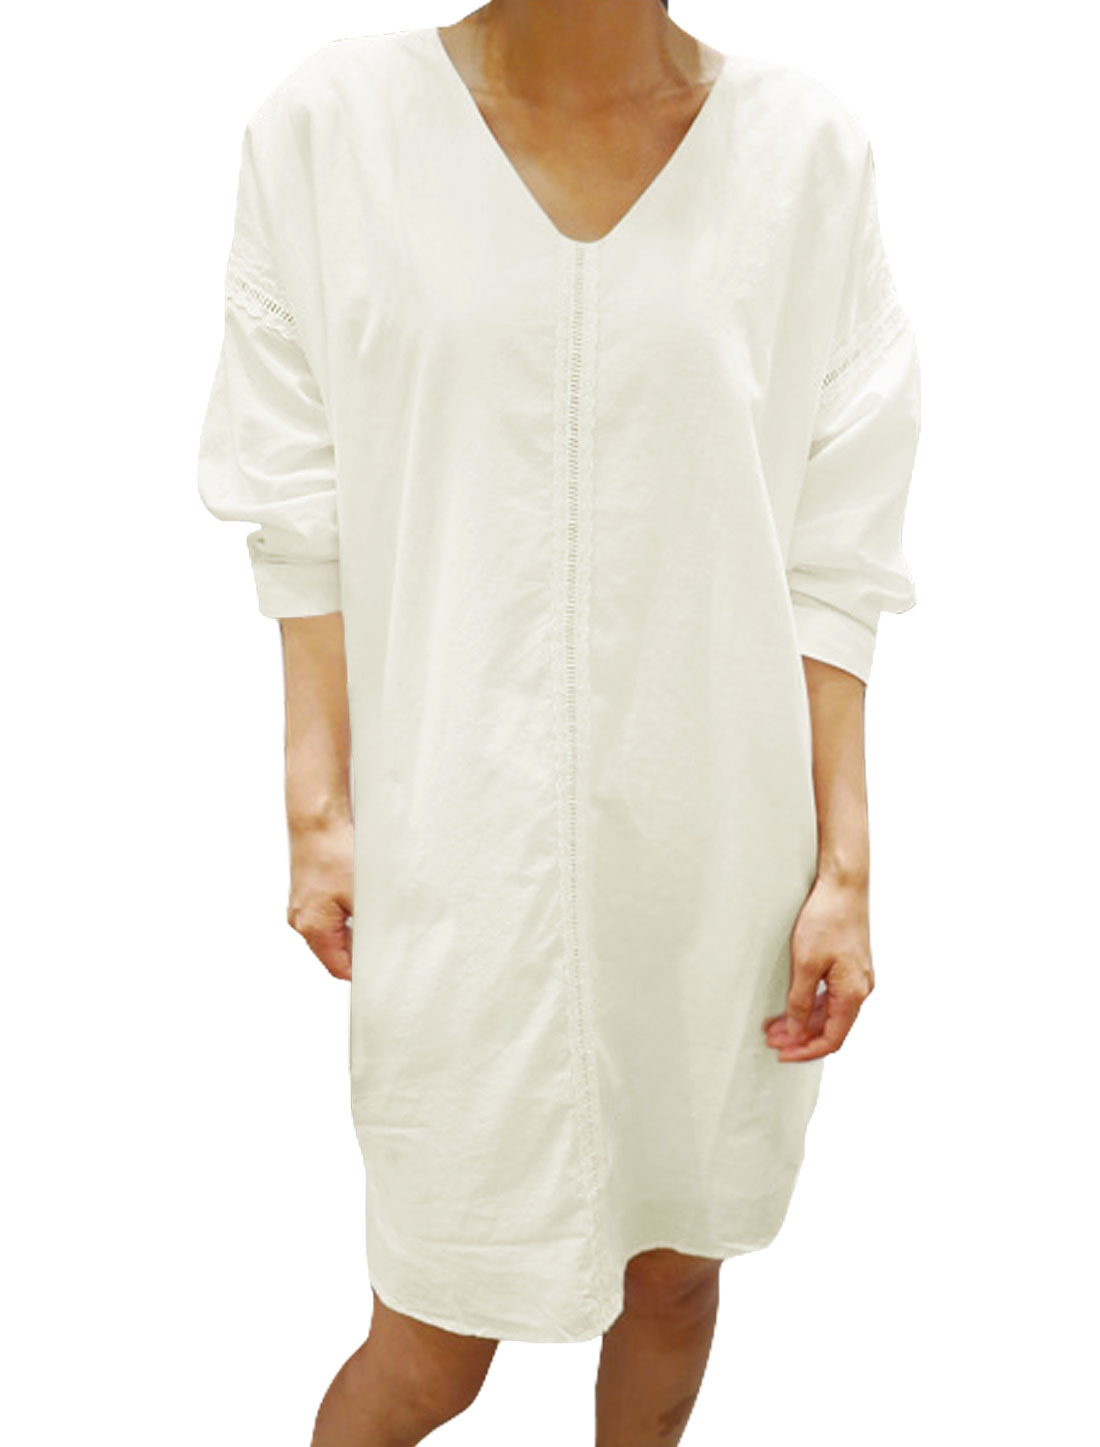 Ladies 3/4 Sleeves V Neck Stitched Loose Tunic Dress White XS